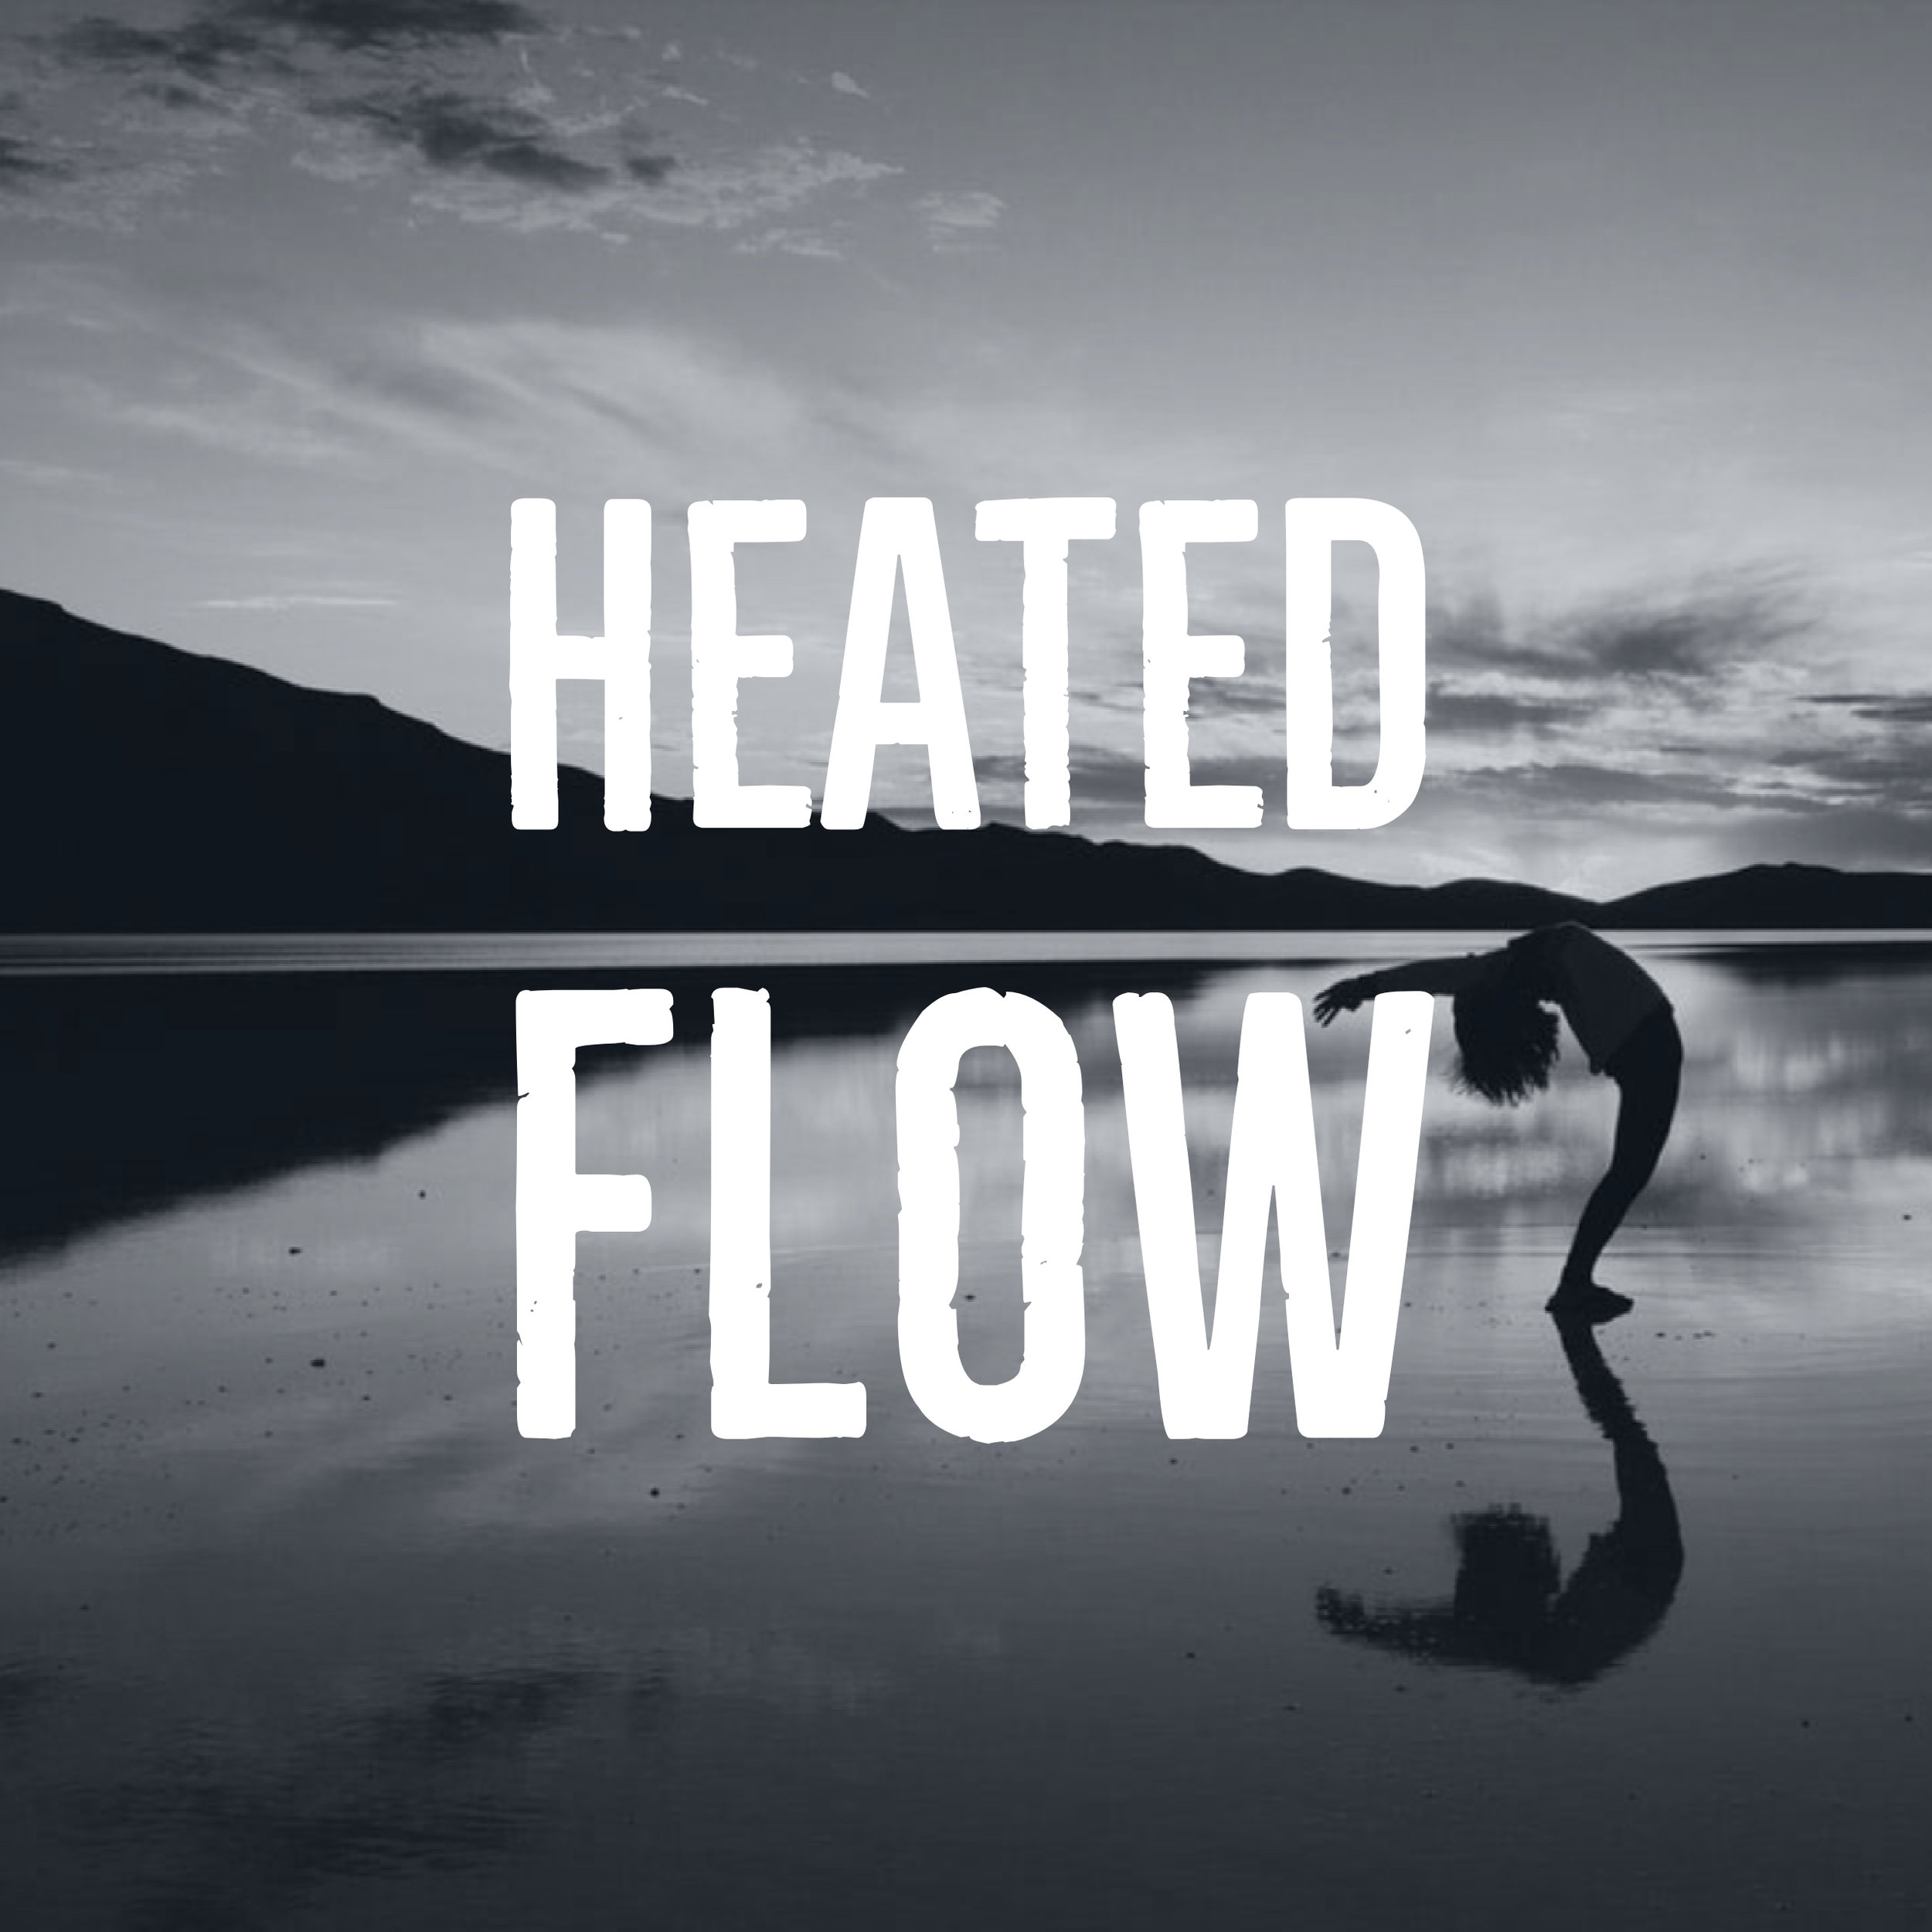 Heated Flow - This one hour class is held in a room heated to 85-95 degrees. Heated Flow will fire up your core strength as you flow through demanding yoga sequences. You will build heat from within by connecting breath & movement at a moderate but intuitive pace. Strength, flexibility and balance is achieved through vinyasa flow movement.